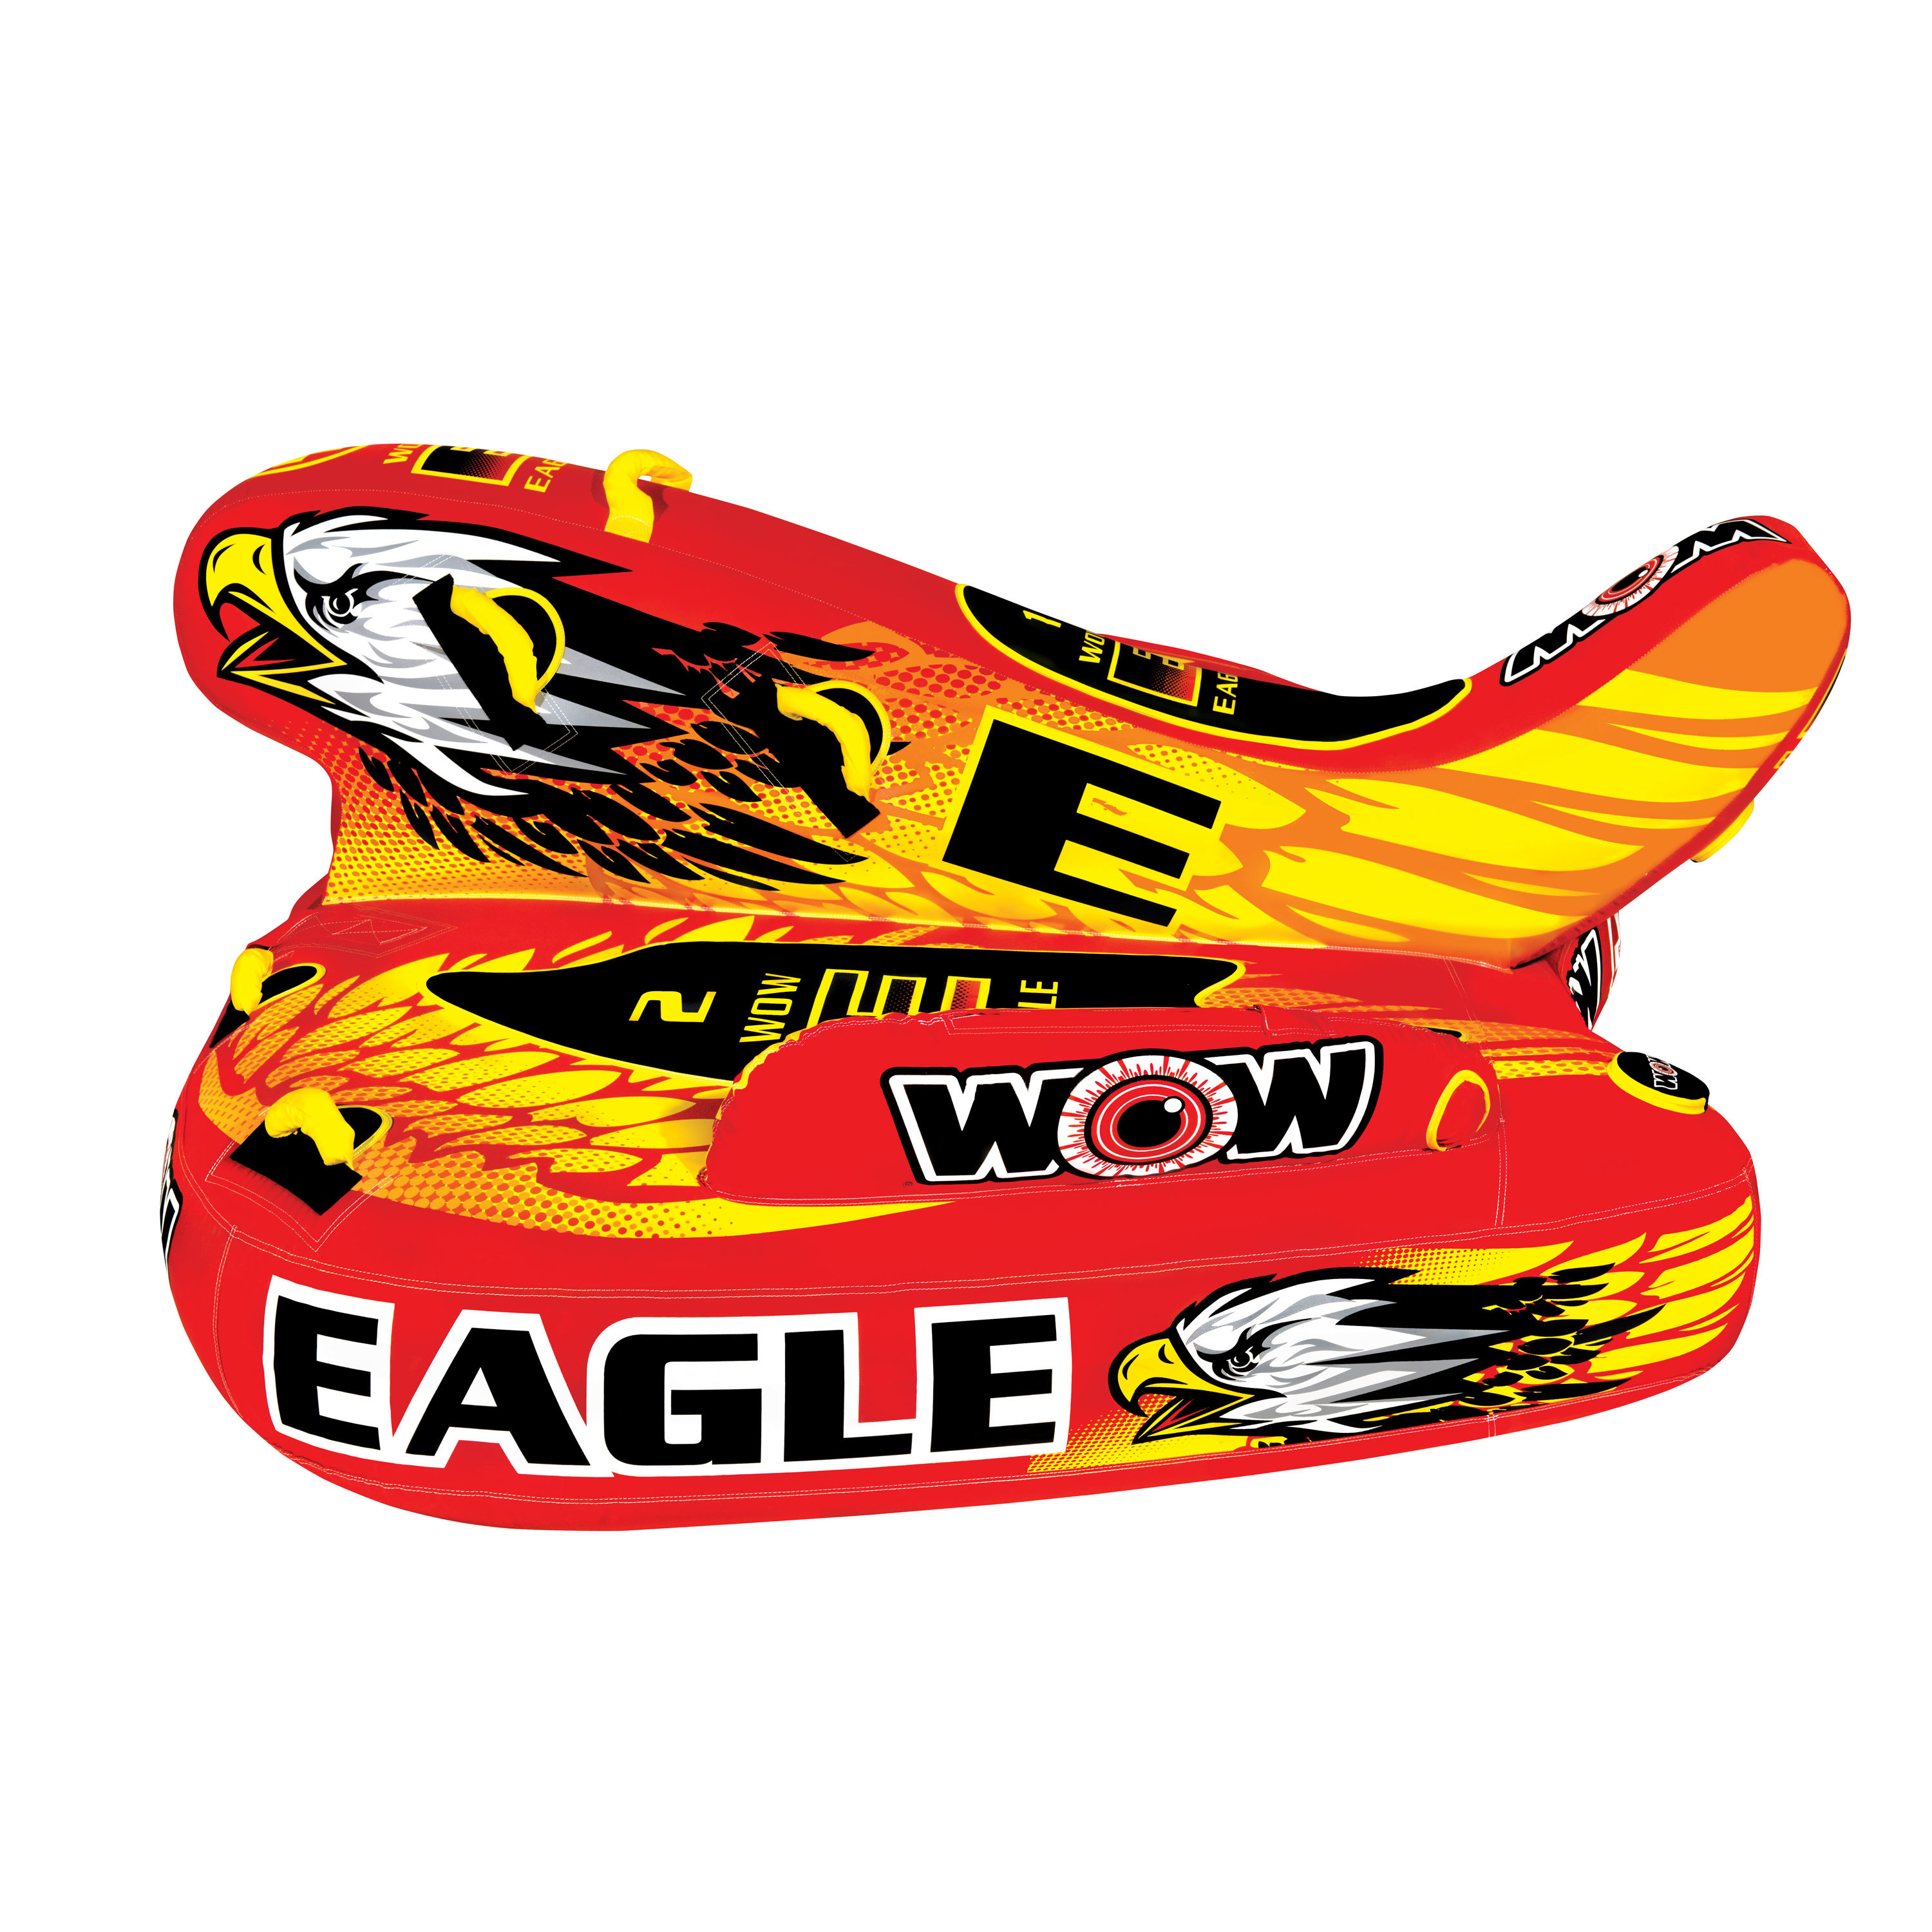 Wow 17-1040 Towable Wow Eagle 1-3 Person